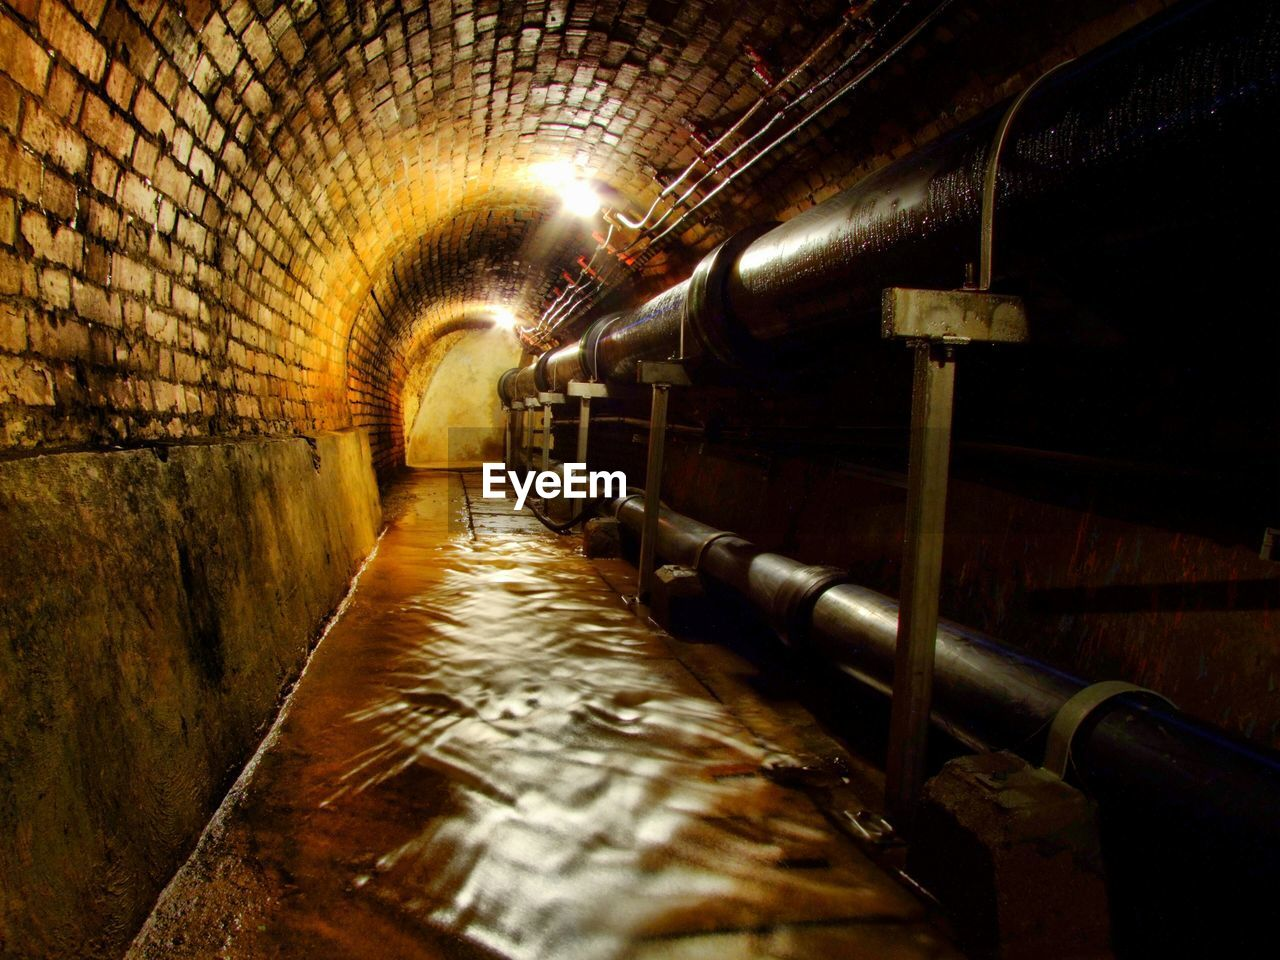 indoors, architecture, tunnel, illuminated, no people, pipe - tube, metal, lighting equipment, built structure, transportation, wall - building feature, water, flowing water, arch, public transportation, connection, subway, industry, blurred motion, flowing, ceiling